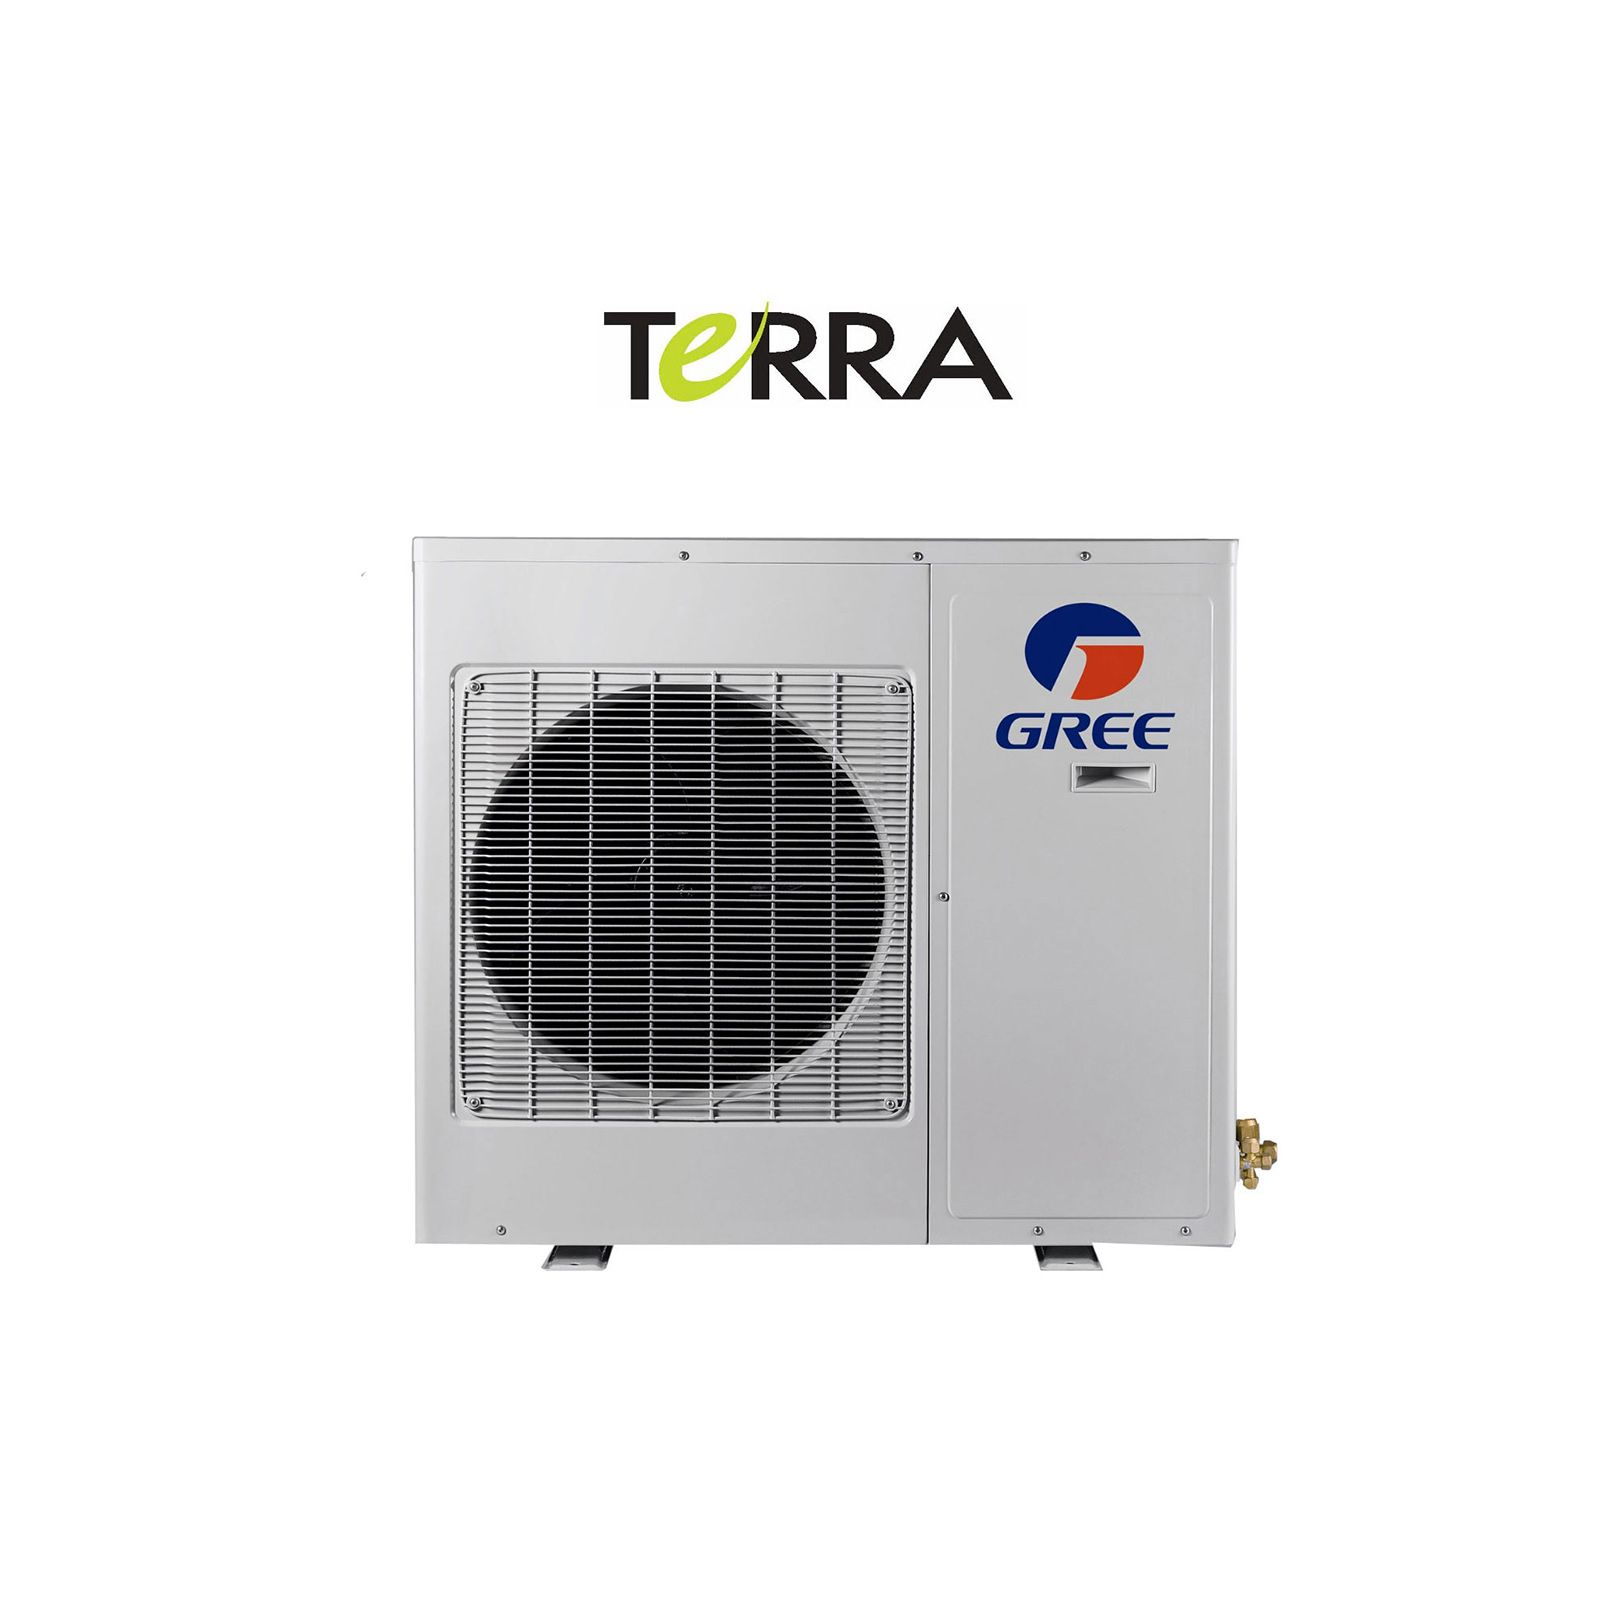 GREE TERRA09HP230V1AO - 3/4 Ton 27 SEER TERRA Ductless Mini-Split Heat Pump 208-230 V